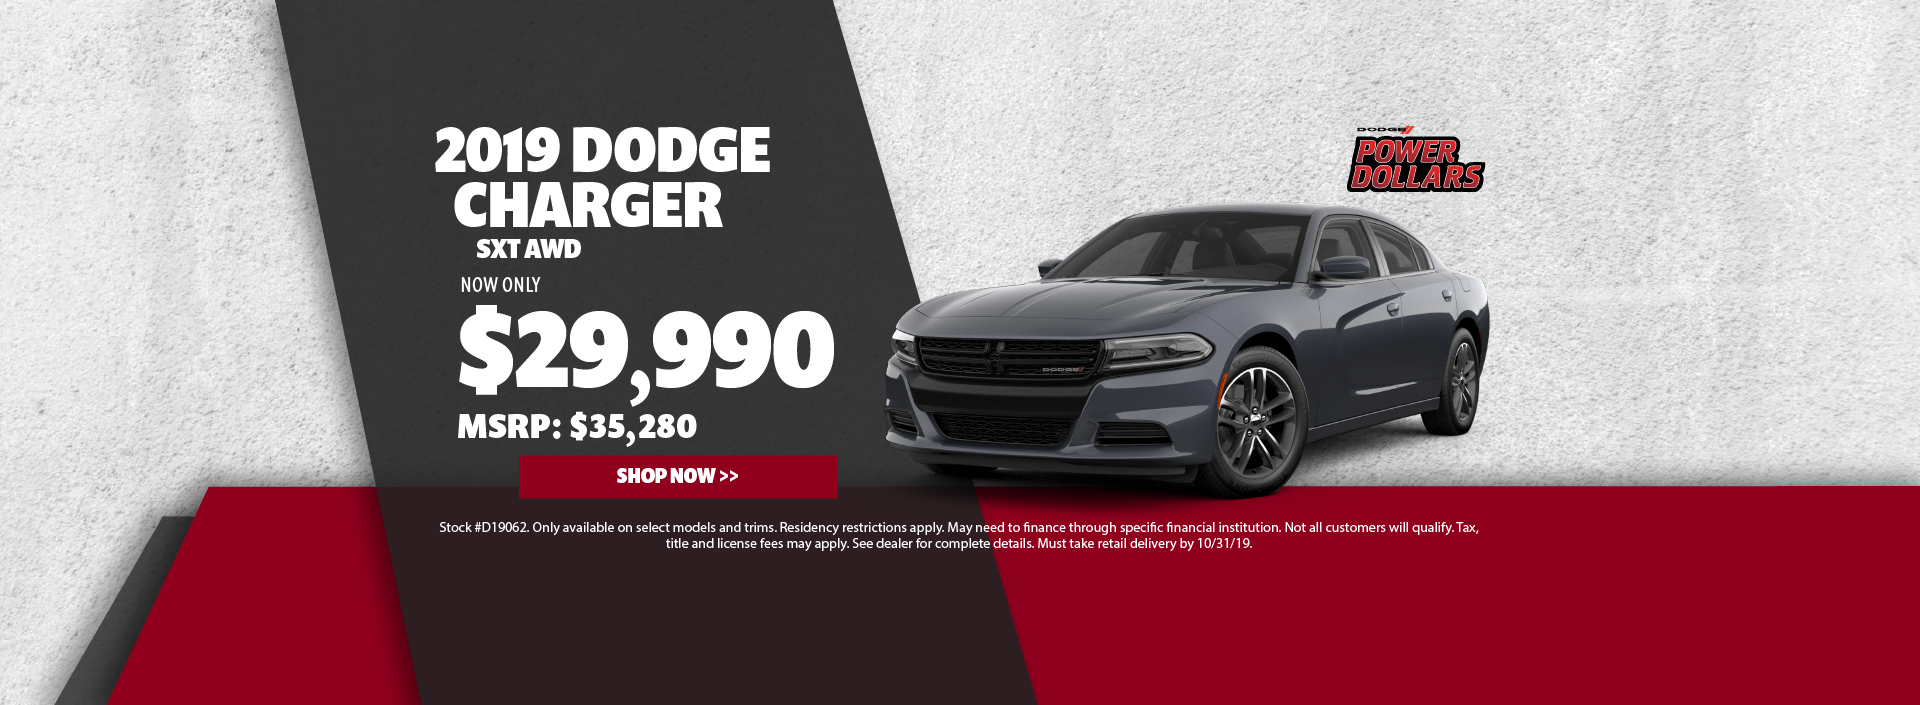 2019 Dodge Charger Offer